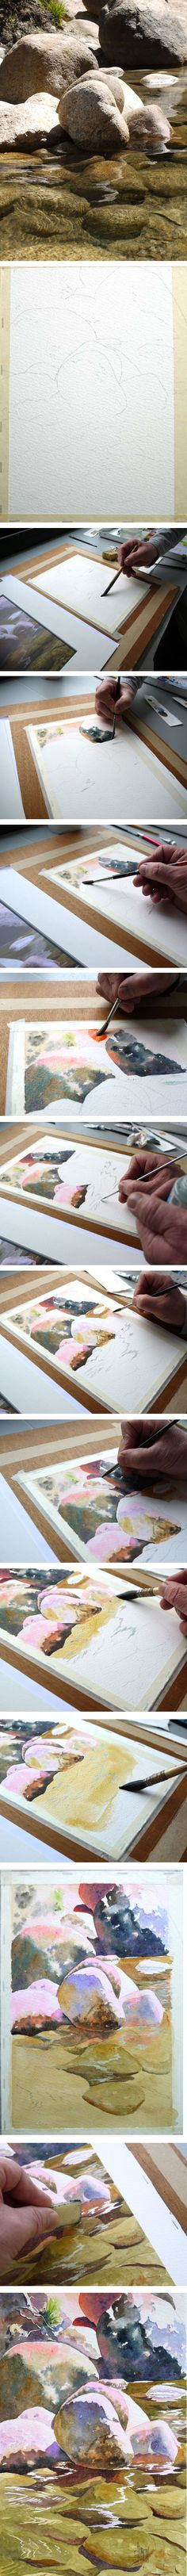 Step by step - Watercolor Yosemite park river